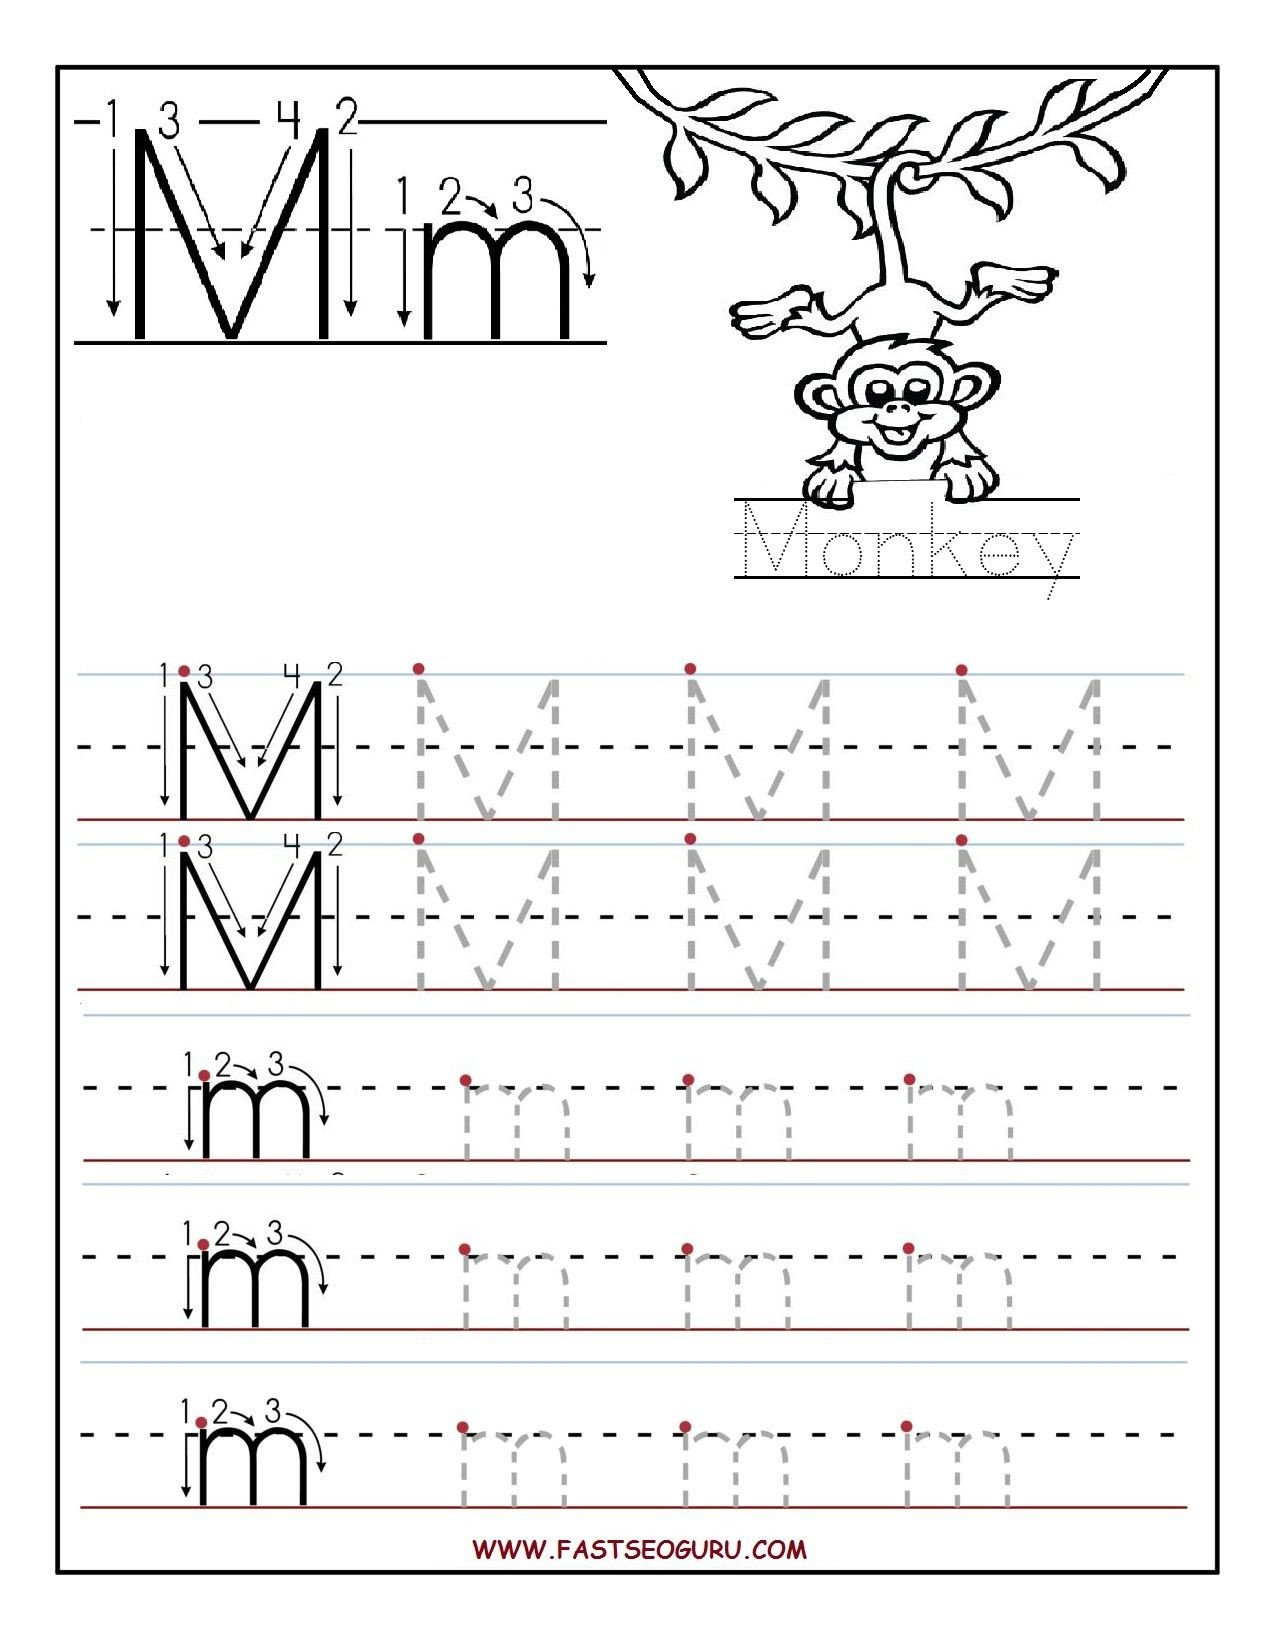 Letter M Worksheets for Preschoolers Printable Letter M Tracing Worksheets for Preschool